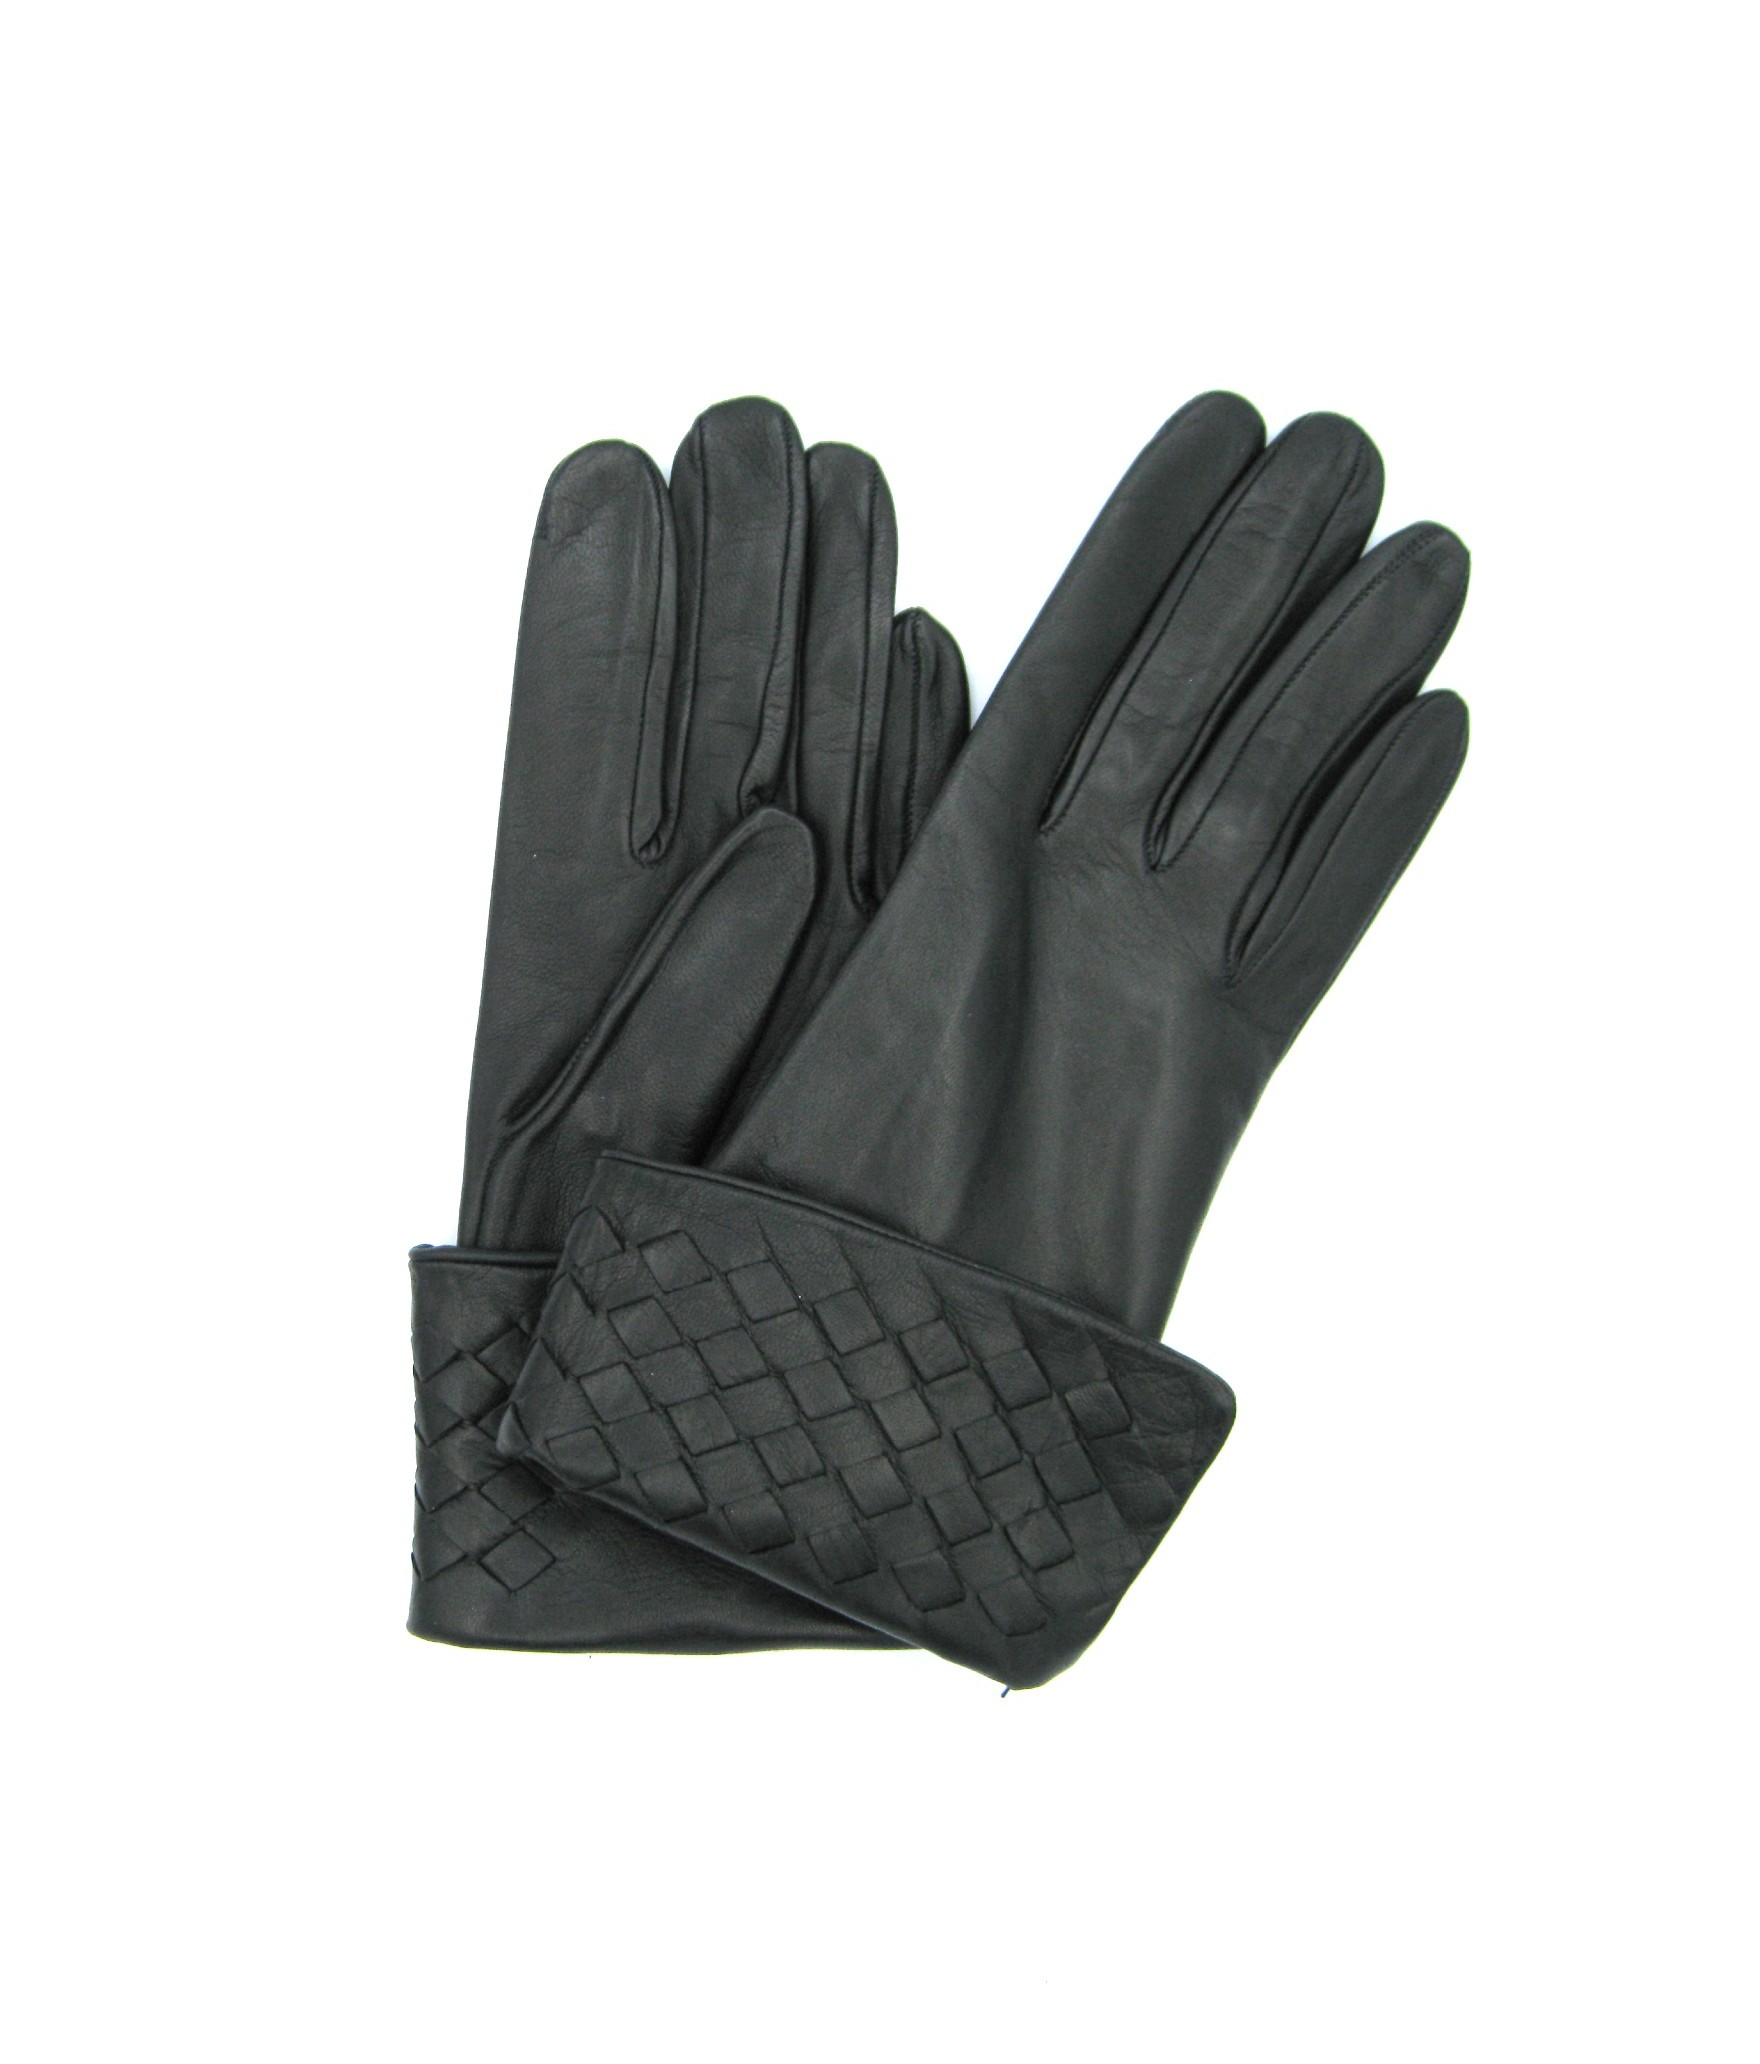 Nappa leather gloves silk lined with Criss Cross cuff Black